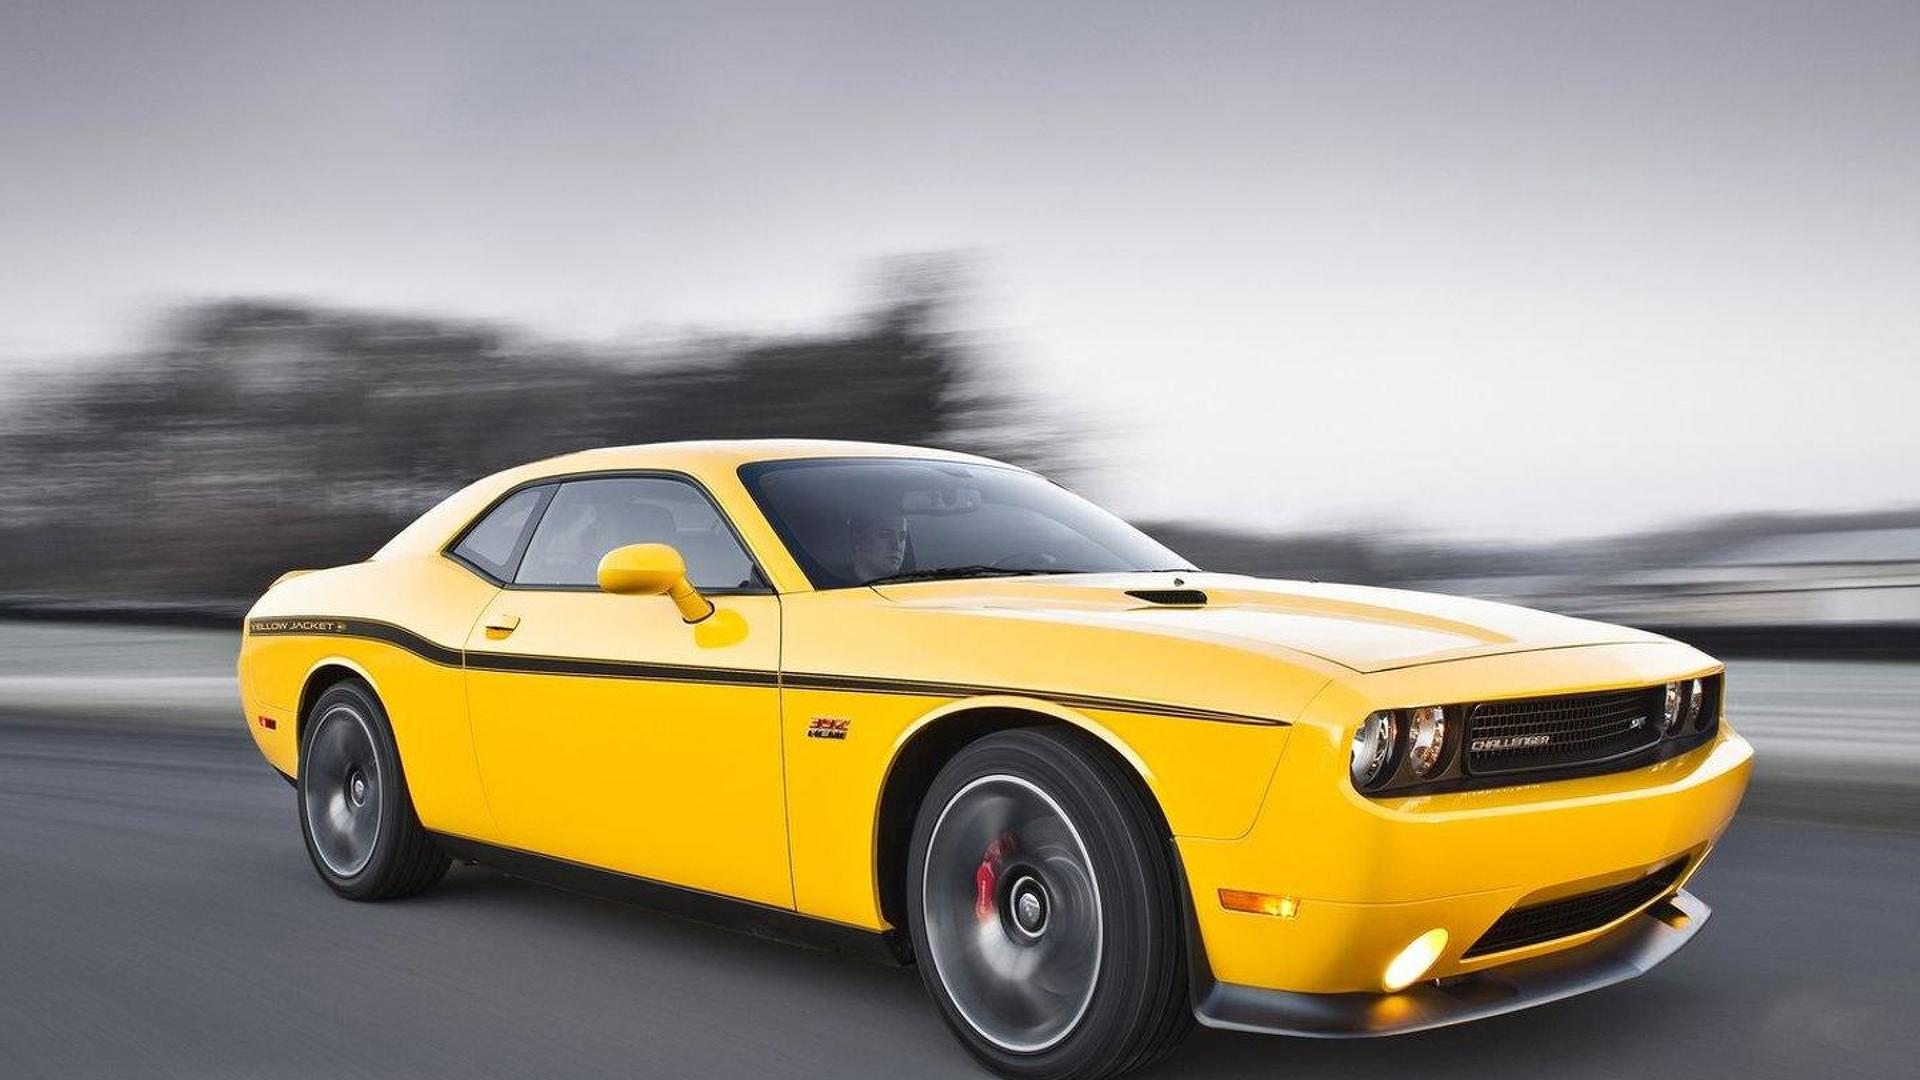 2012 dodge challenger srt8 yellow jacket and charger srt8 super bee for l a. Black Bedroom Furniture Sets. Home Design Ideas